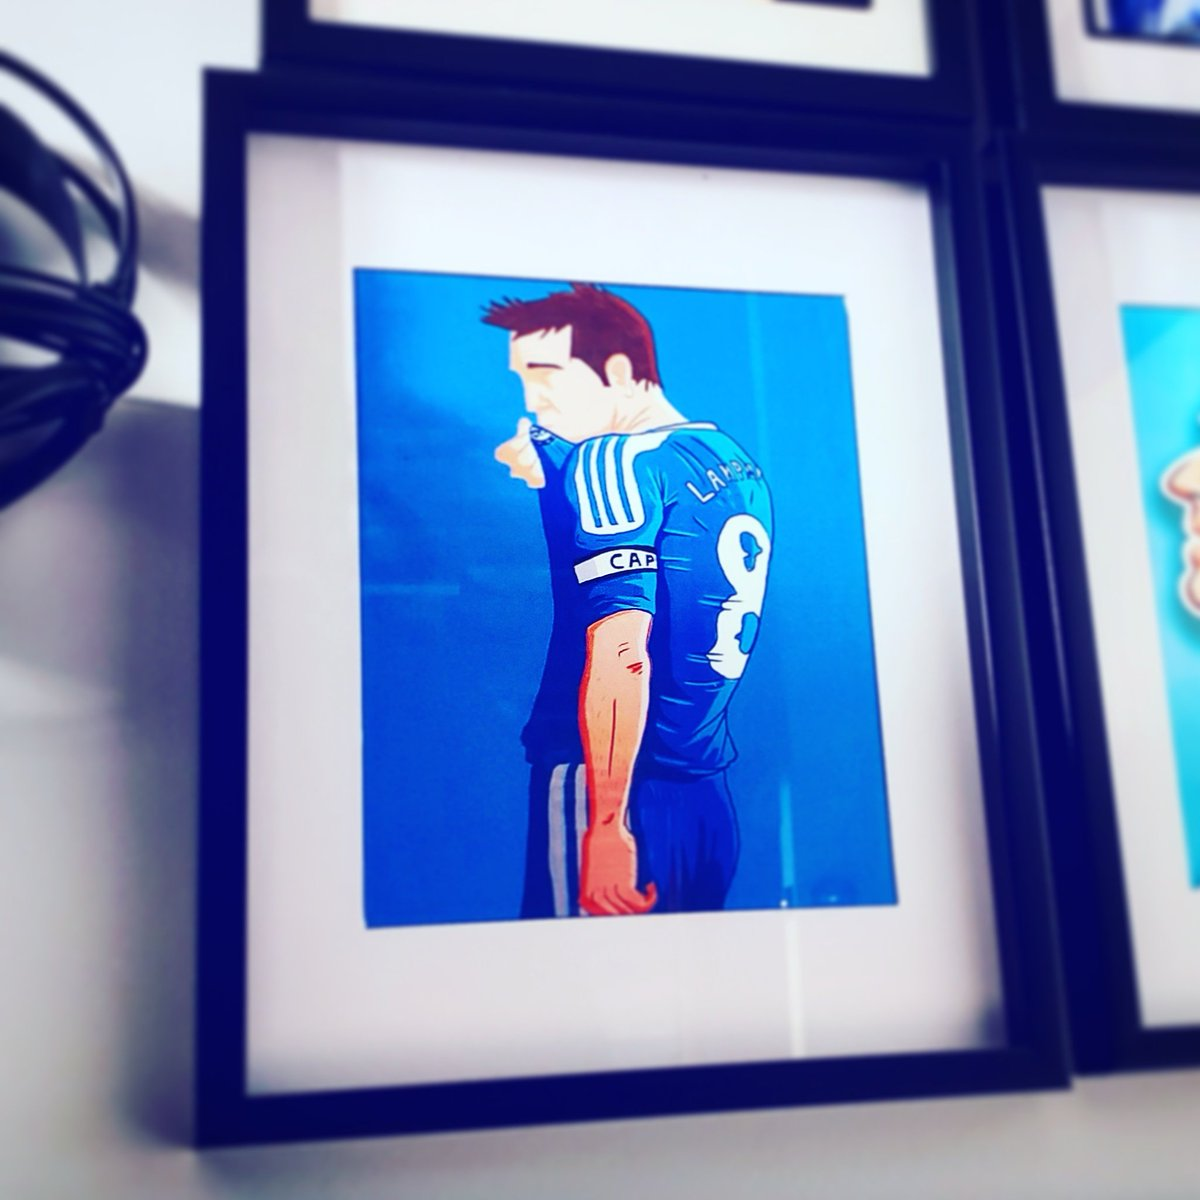 👑 Forever a legend and royalty at the clubhouse no matter what! Thank you Frank 8️⃣ #AhmedsCFC #Chelsea #CFC #Blues #ChelseaFC #PL #PremierLeague #BlueIsTheColour #keeptheblueflagflyinghigh #ktbffh #ChampionsLeague #UCL #FACup #ChampionsLeague #FrankLampard #SuperFrank #Lampard